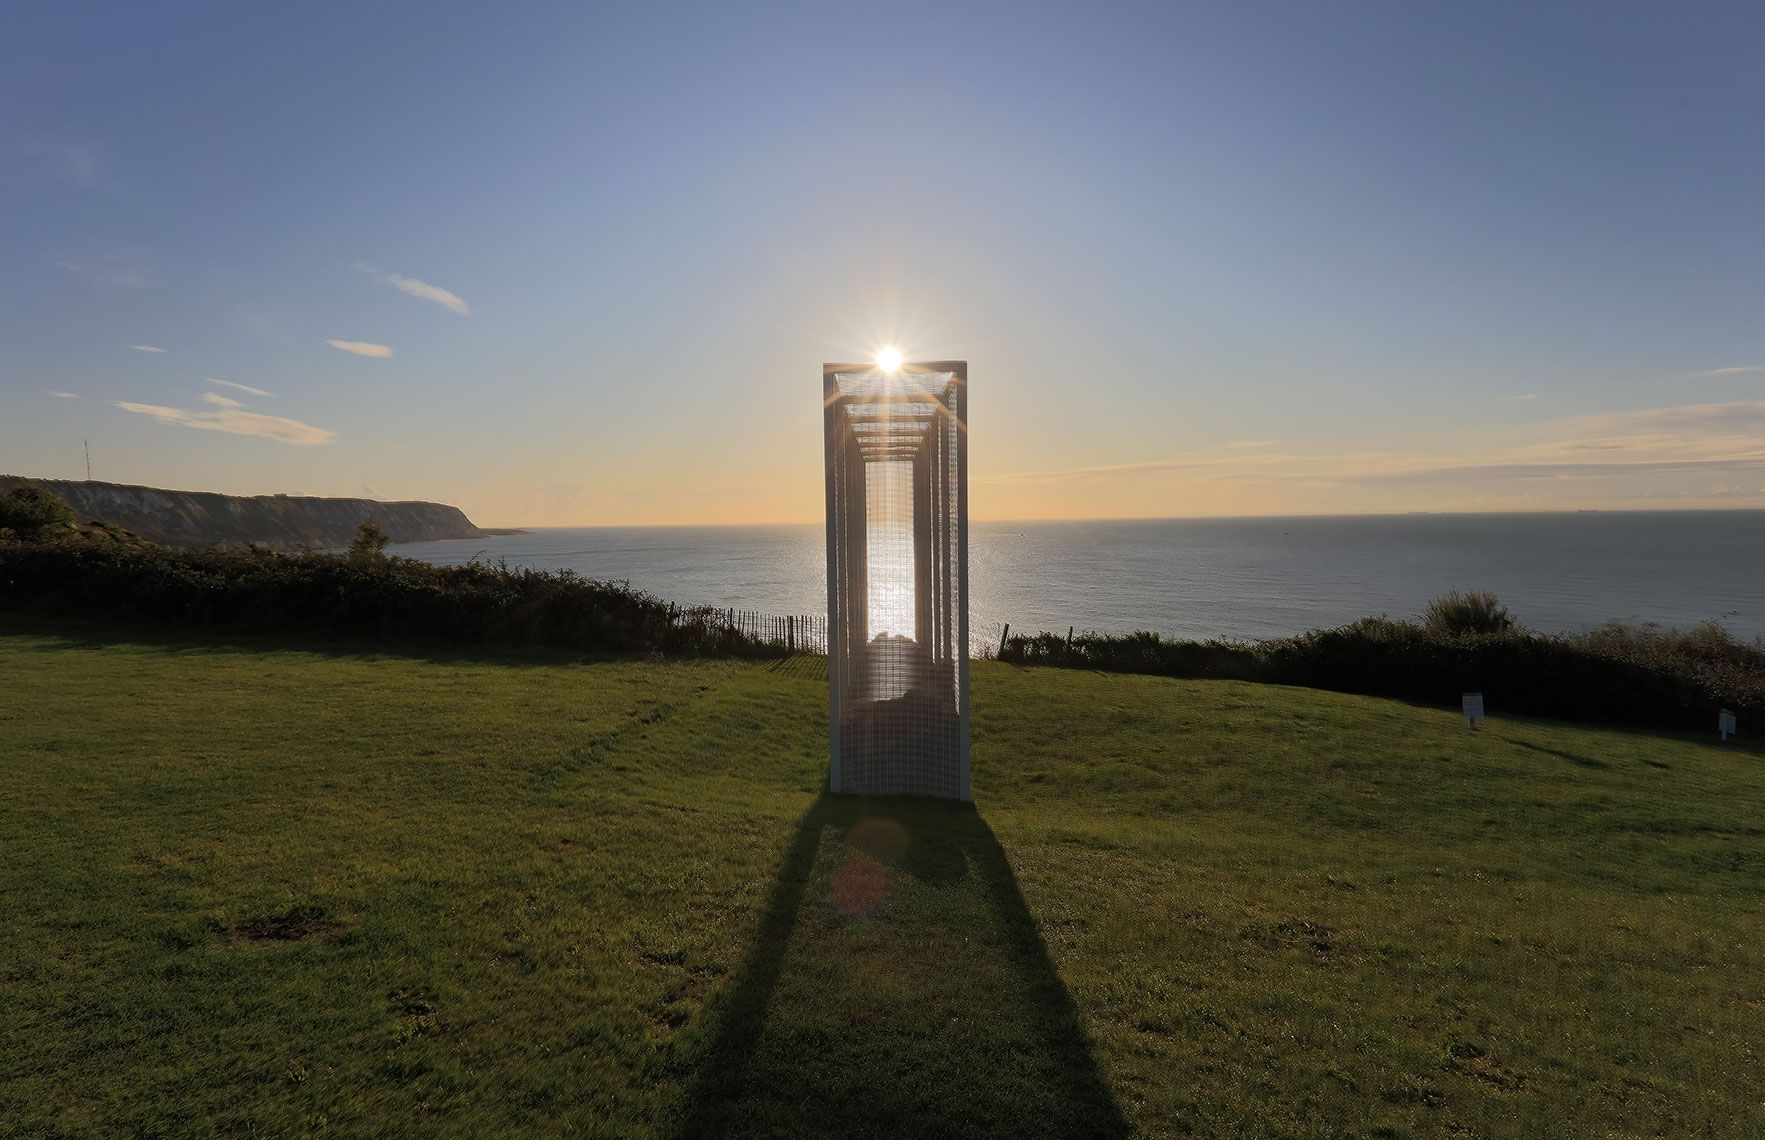 Sun rising over fine artwork next to the seaside in Folkestone, Kent UK